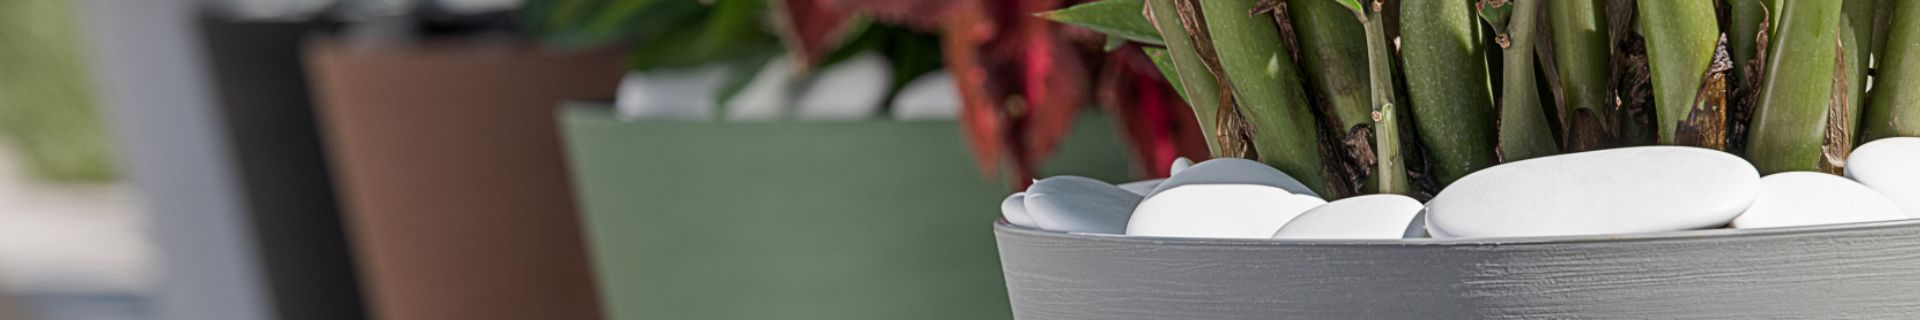 Close-up of plant in a Respect pot